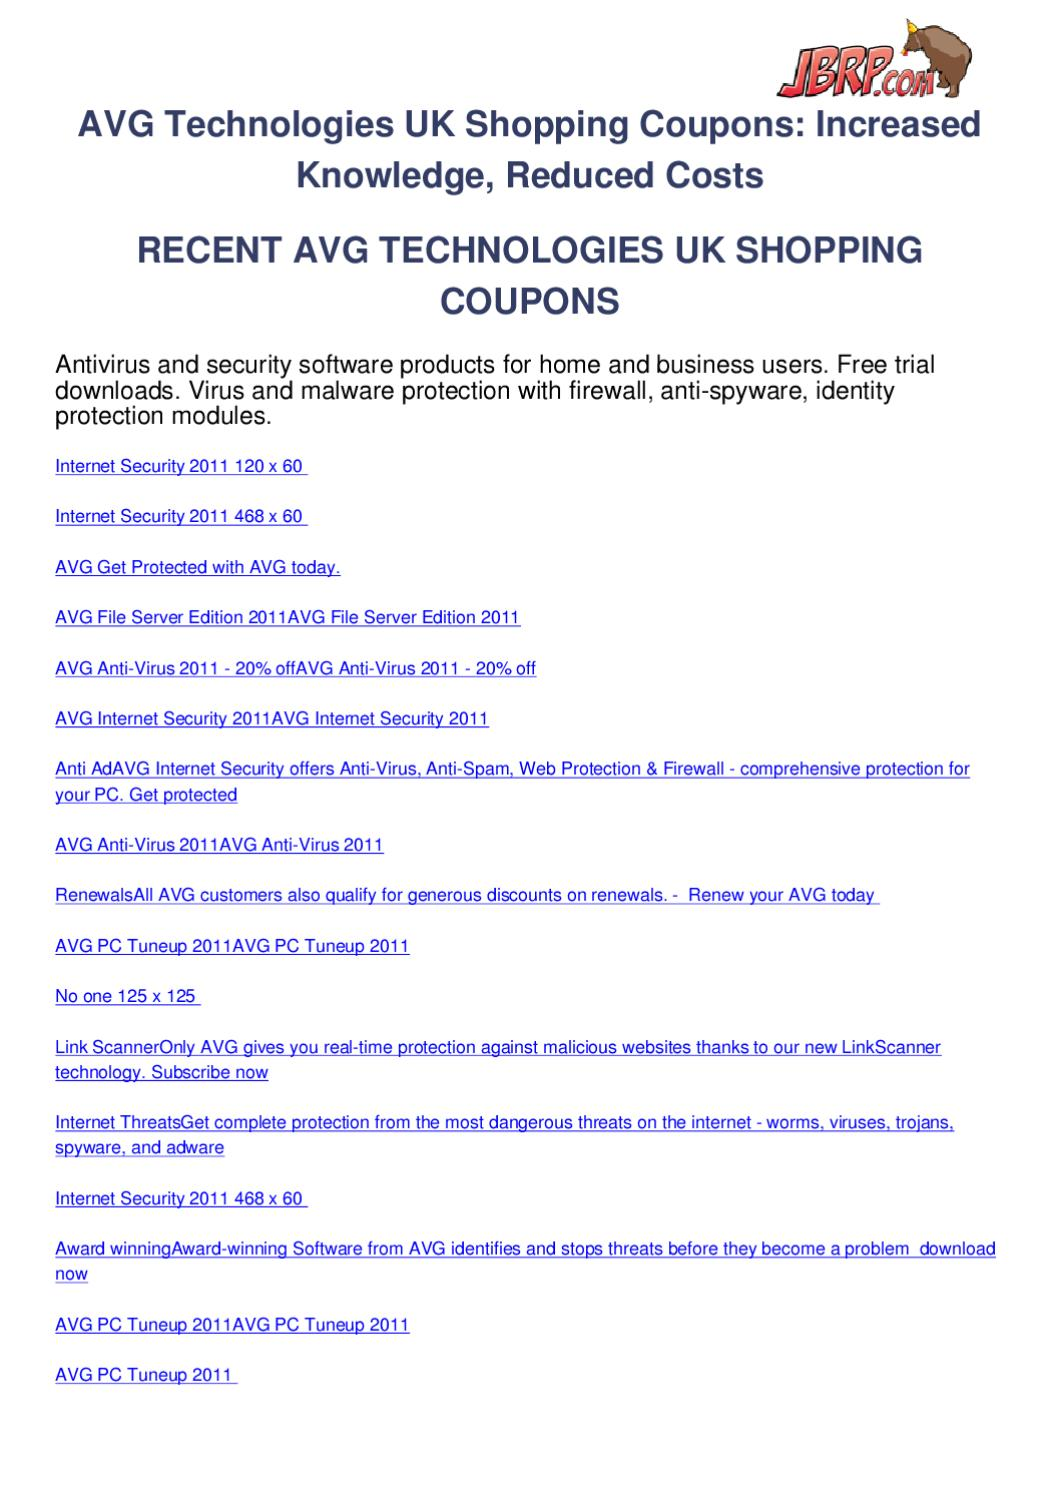 Avg technologies uk shopping coupons by Ben Olsen - issuu